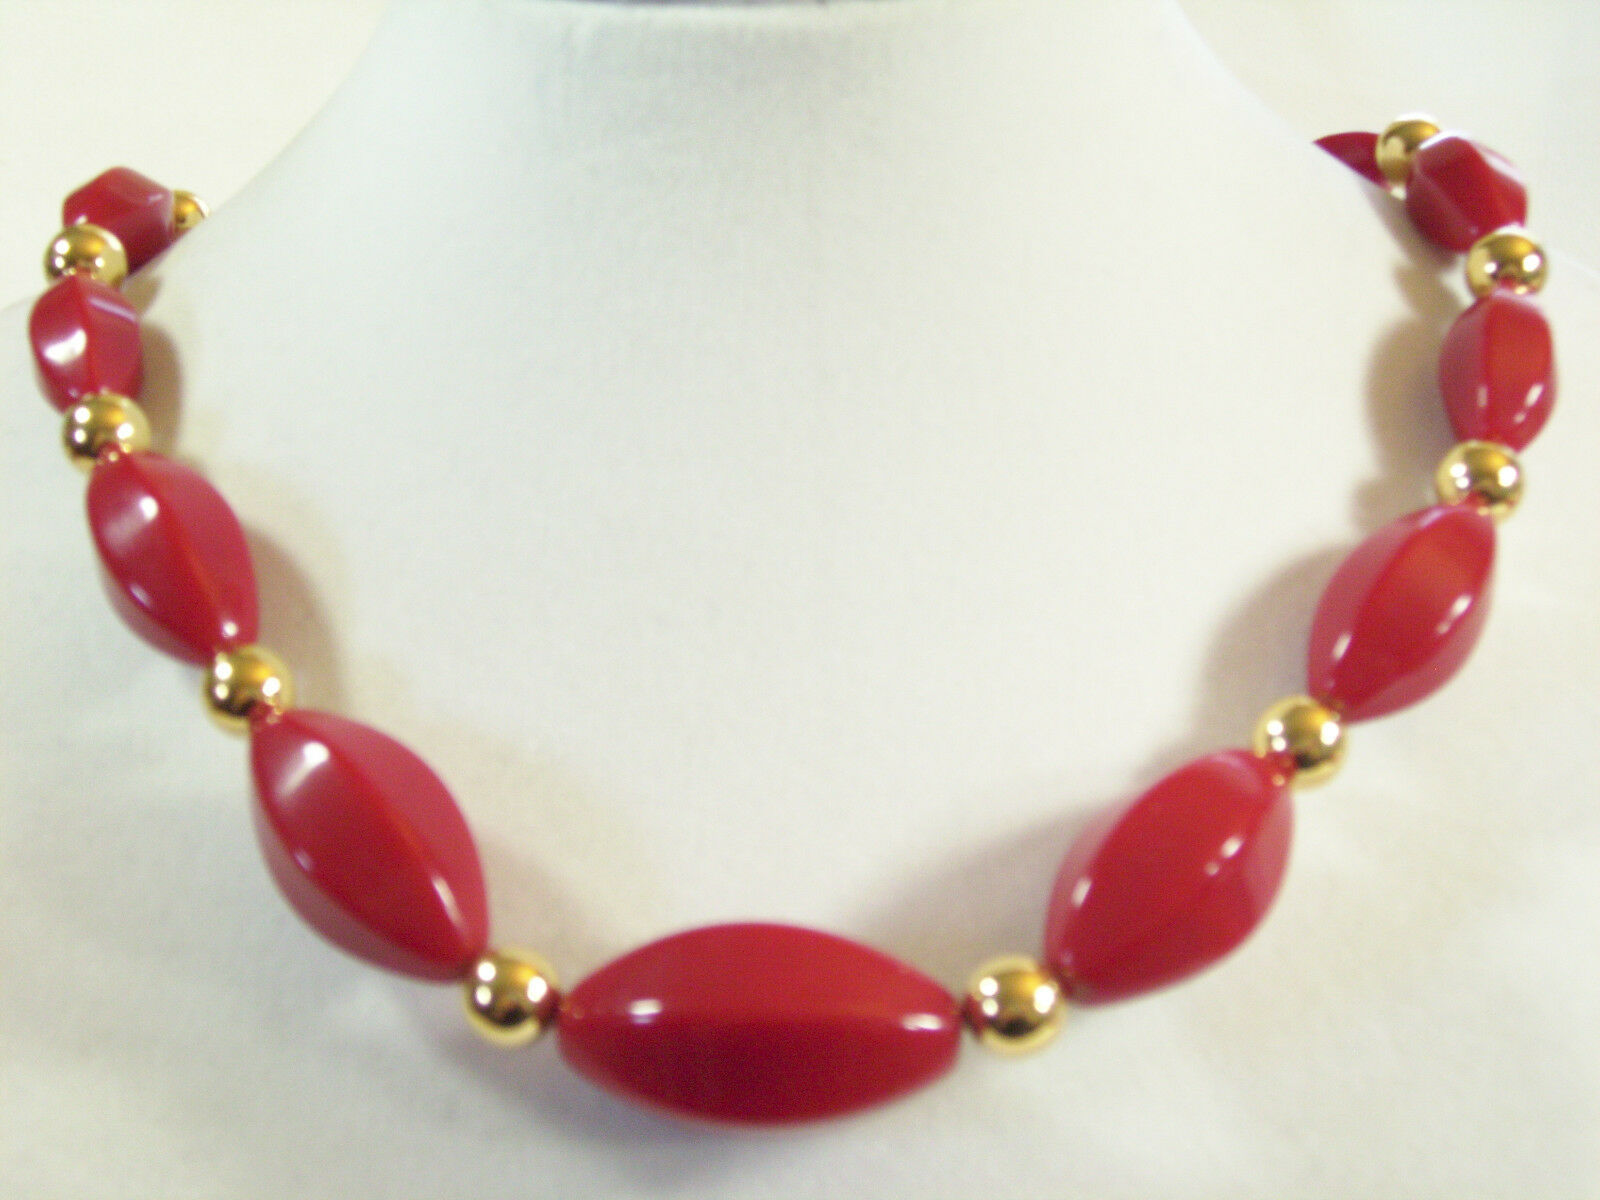 Napier Hot Red Beads Choker Necklace Gold Plated Oval Graduated Size Vintage  image 2